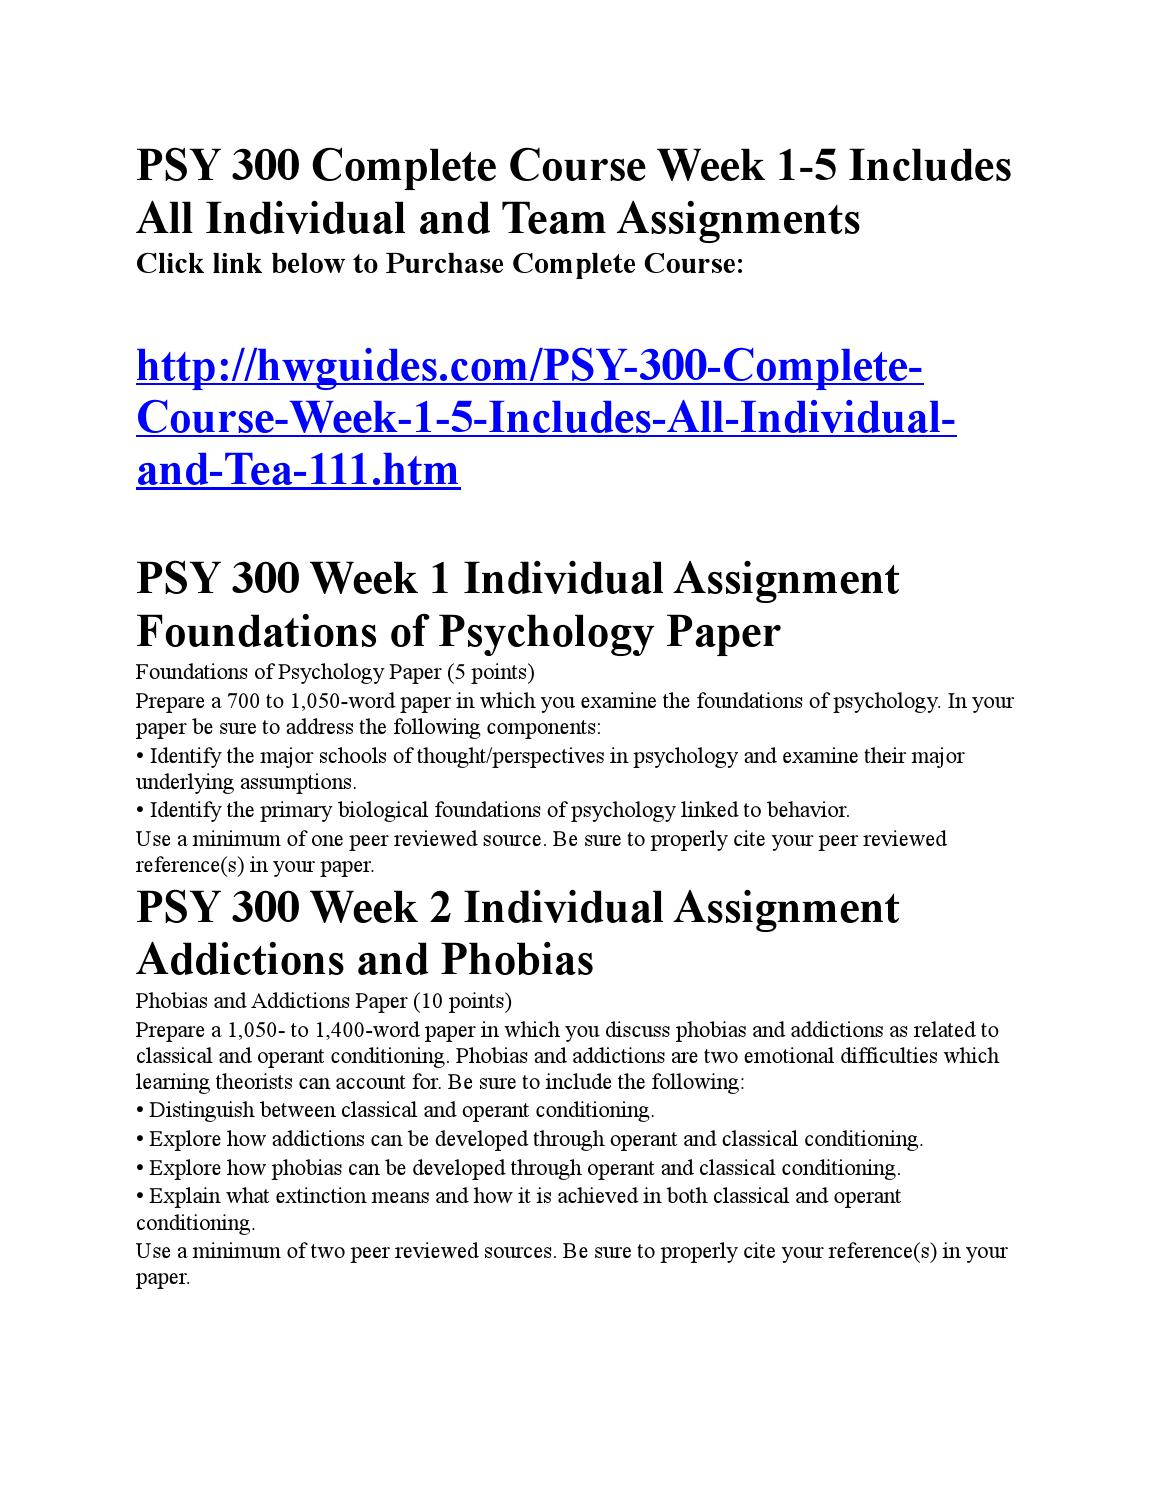 o identify the primary biological foundations of psychology linked to behavior Similar questions psychology what are the primary biological foundation of psychology linked to behavior psy/300 need help identifying the major schools of psychology and their major underlying assumptions also what are the biological foundations of psychology.